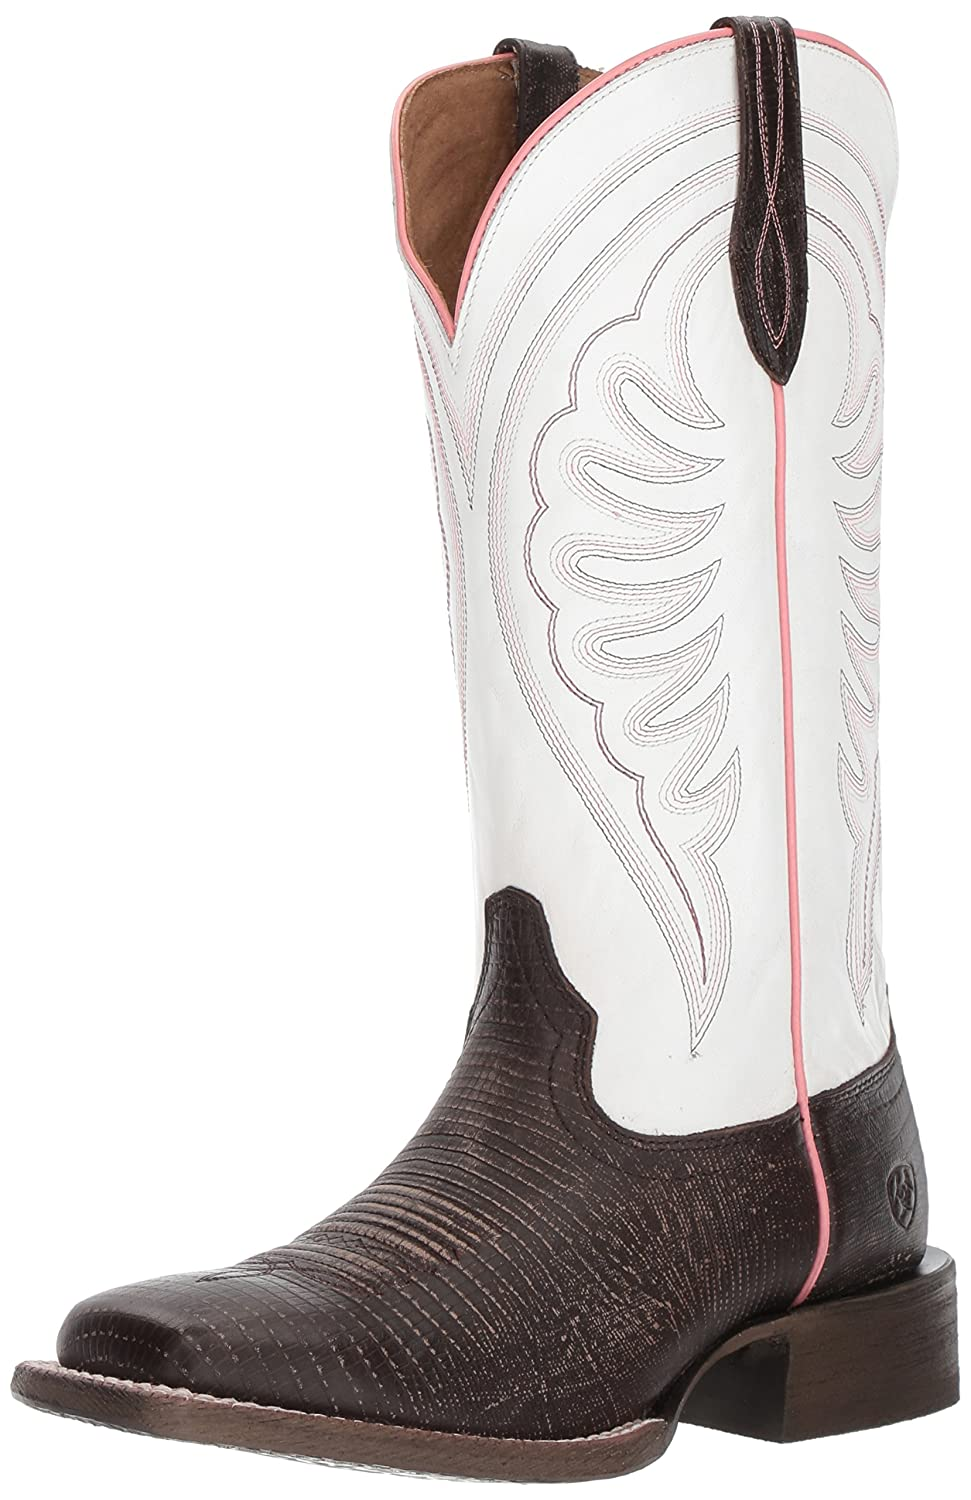 Ariat レディース Reese B01N7WIXLB 6.5 B(M) US|Shades Off Exotics Shades Off Exotics 6.5 B(M) US